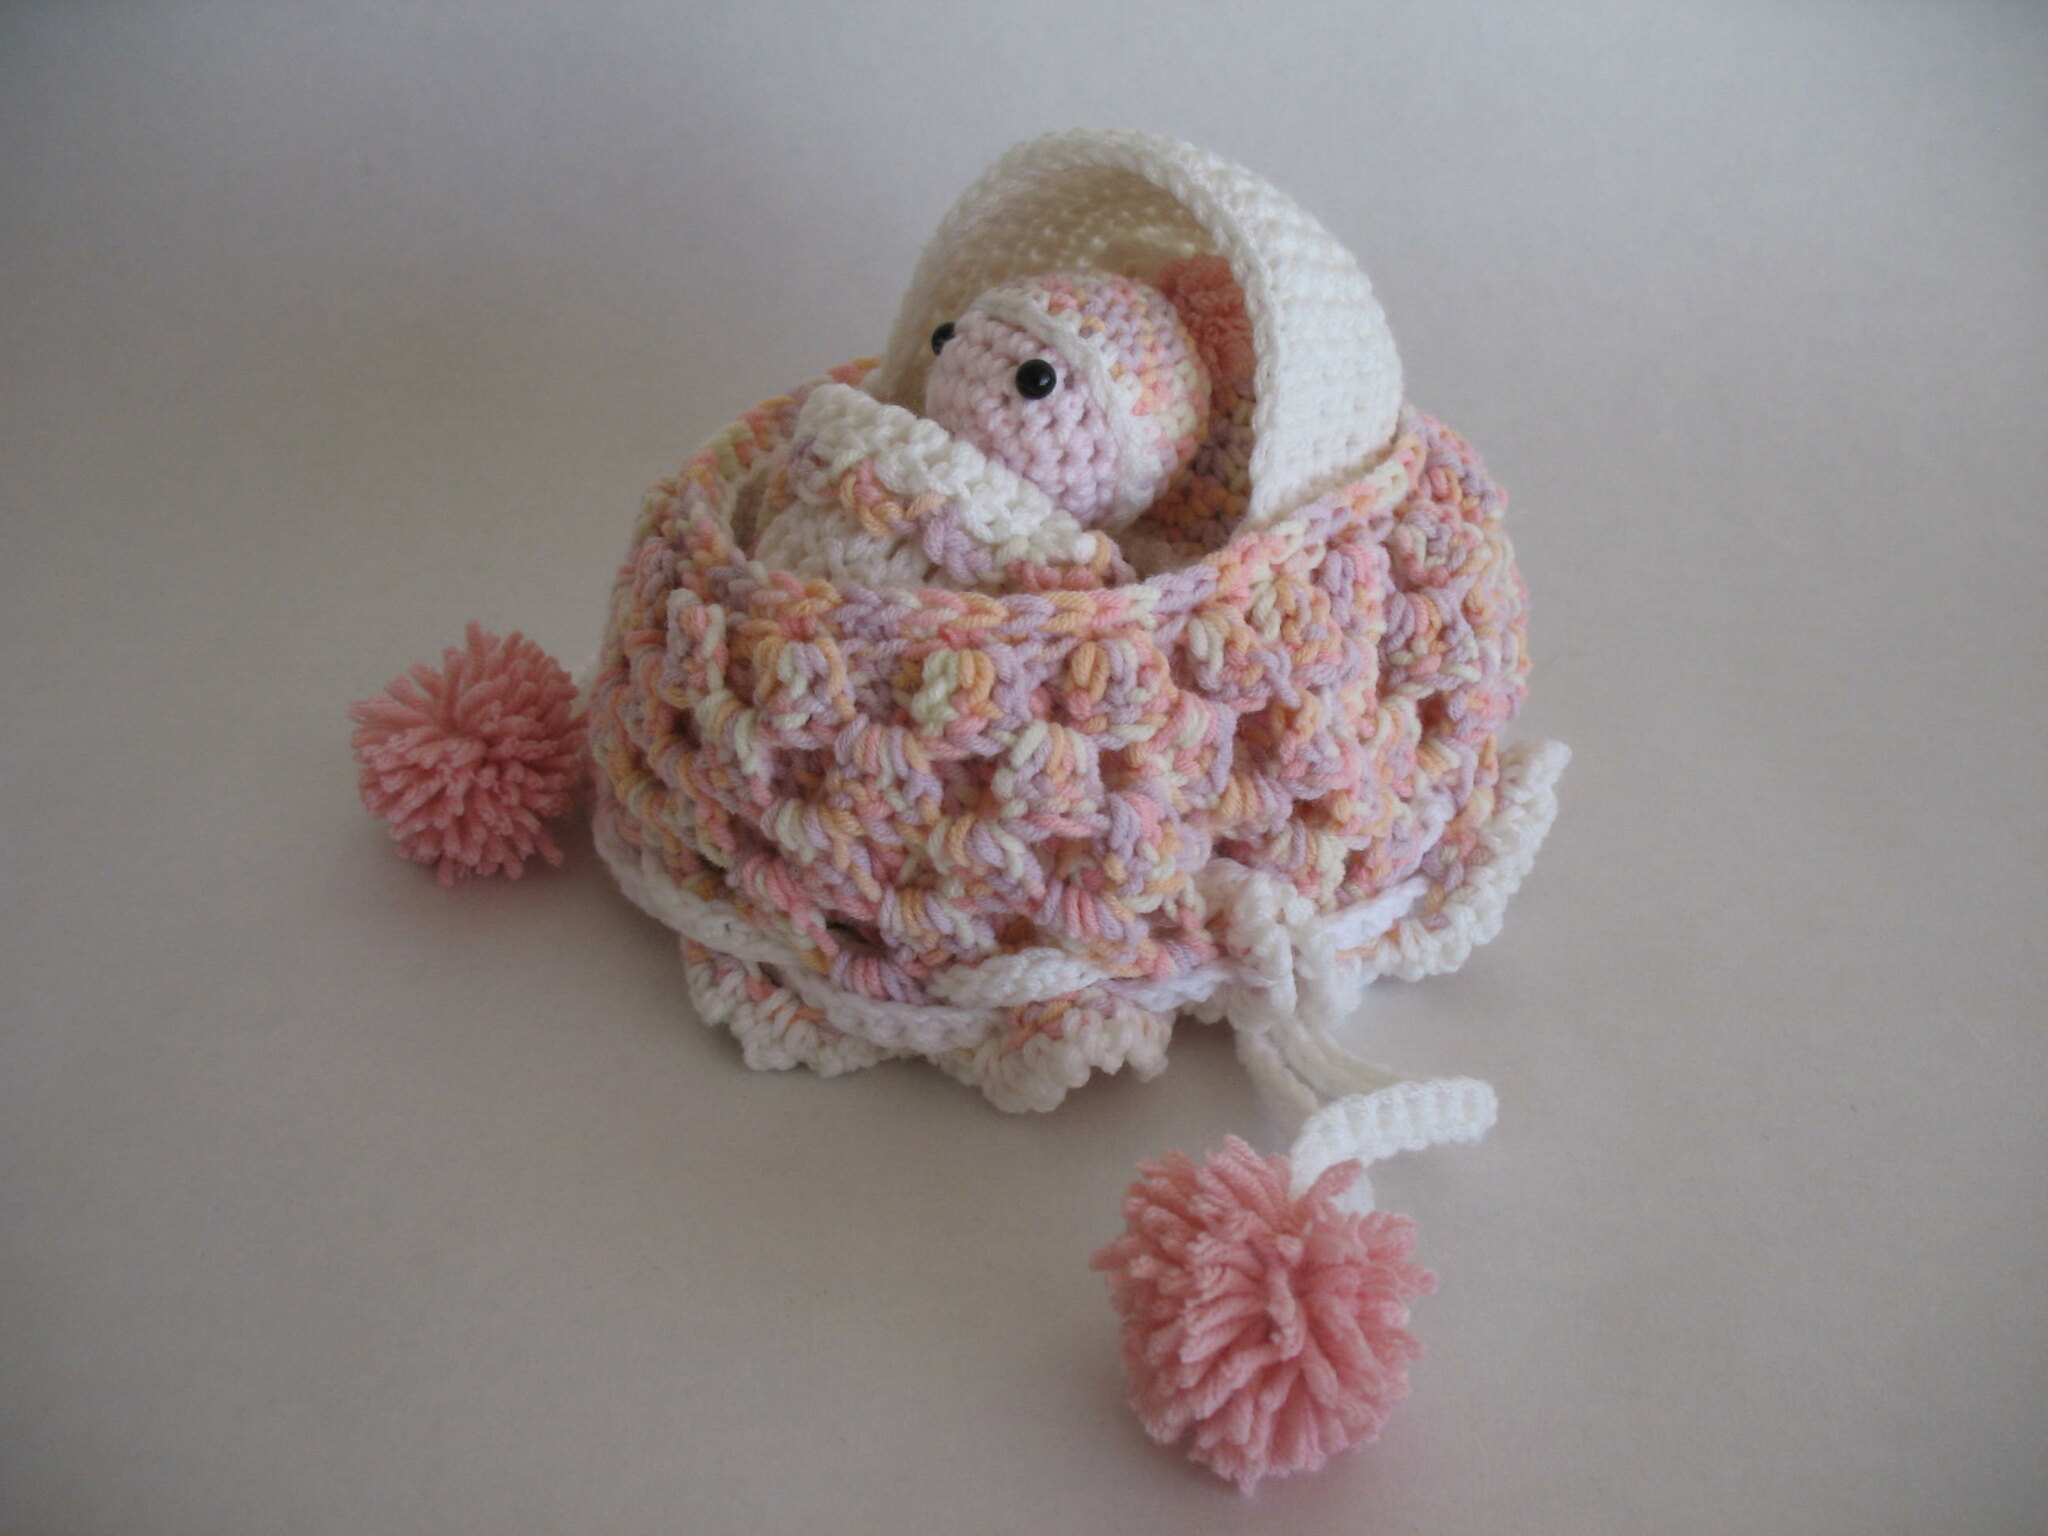 Crochet Baby Cradle Purse Pattern : Baby Cradle Purse Flickr - Photo Sharing!